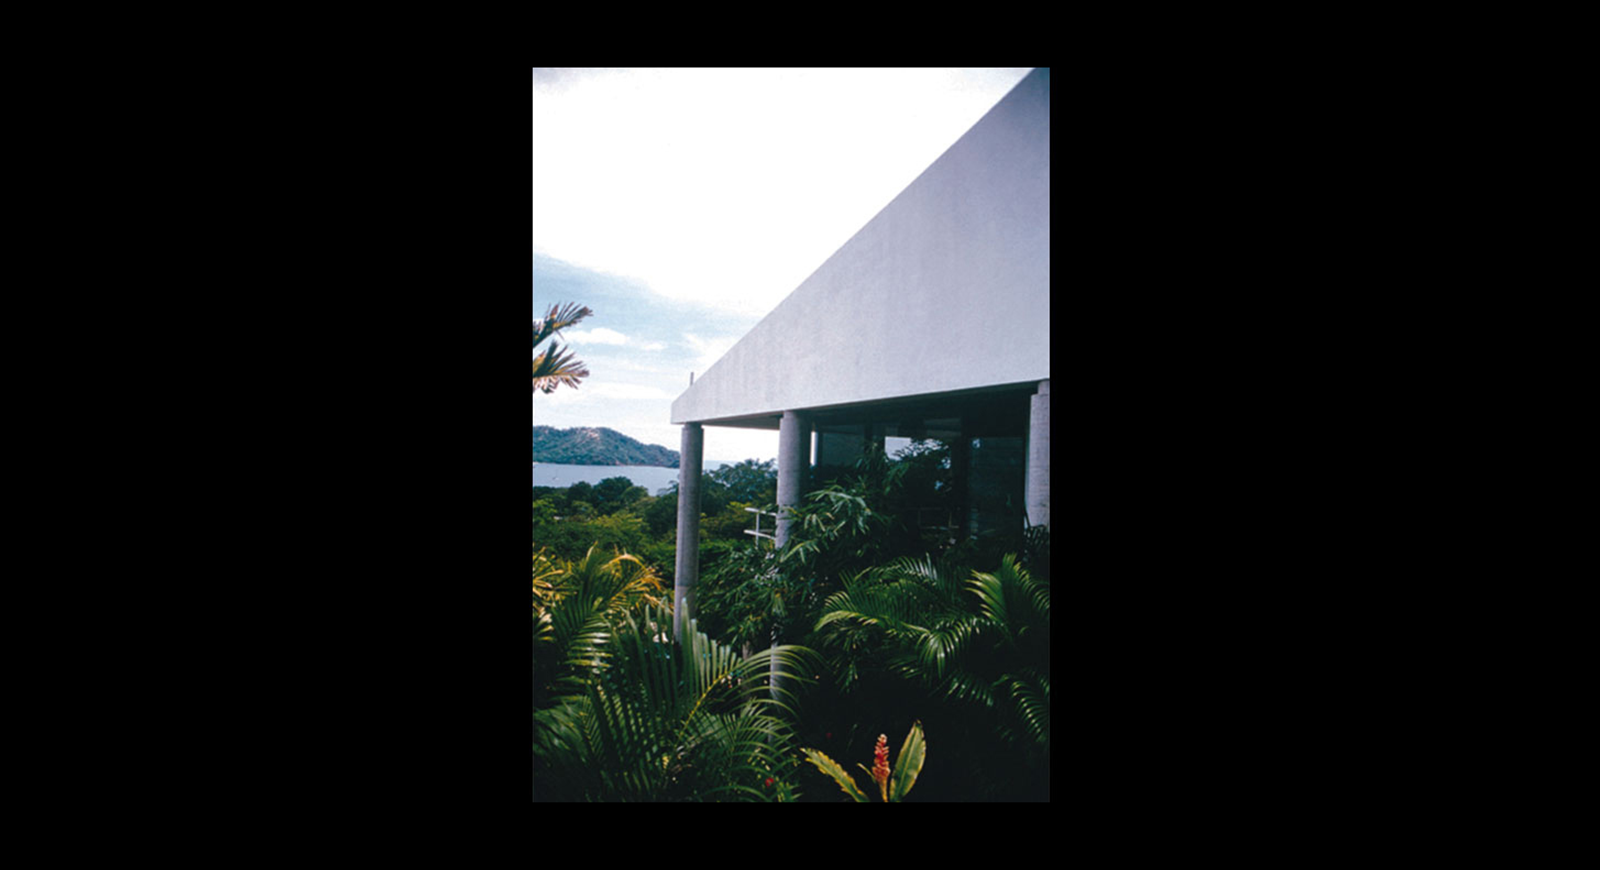 Terry_tropical_architecture_costa_rica5-1